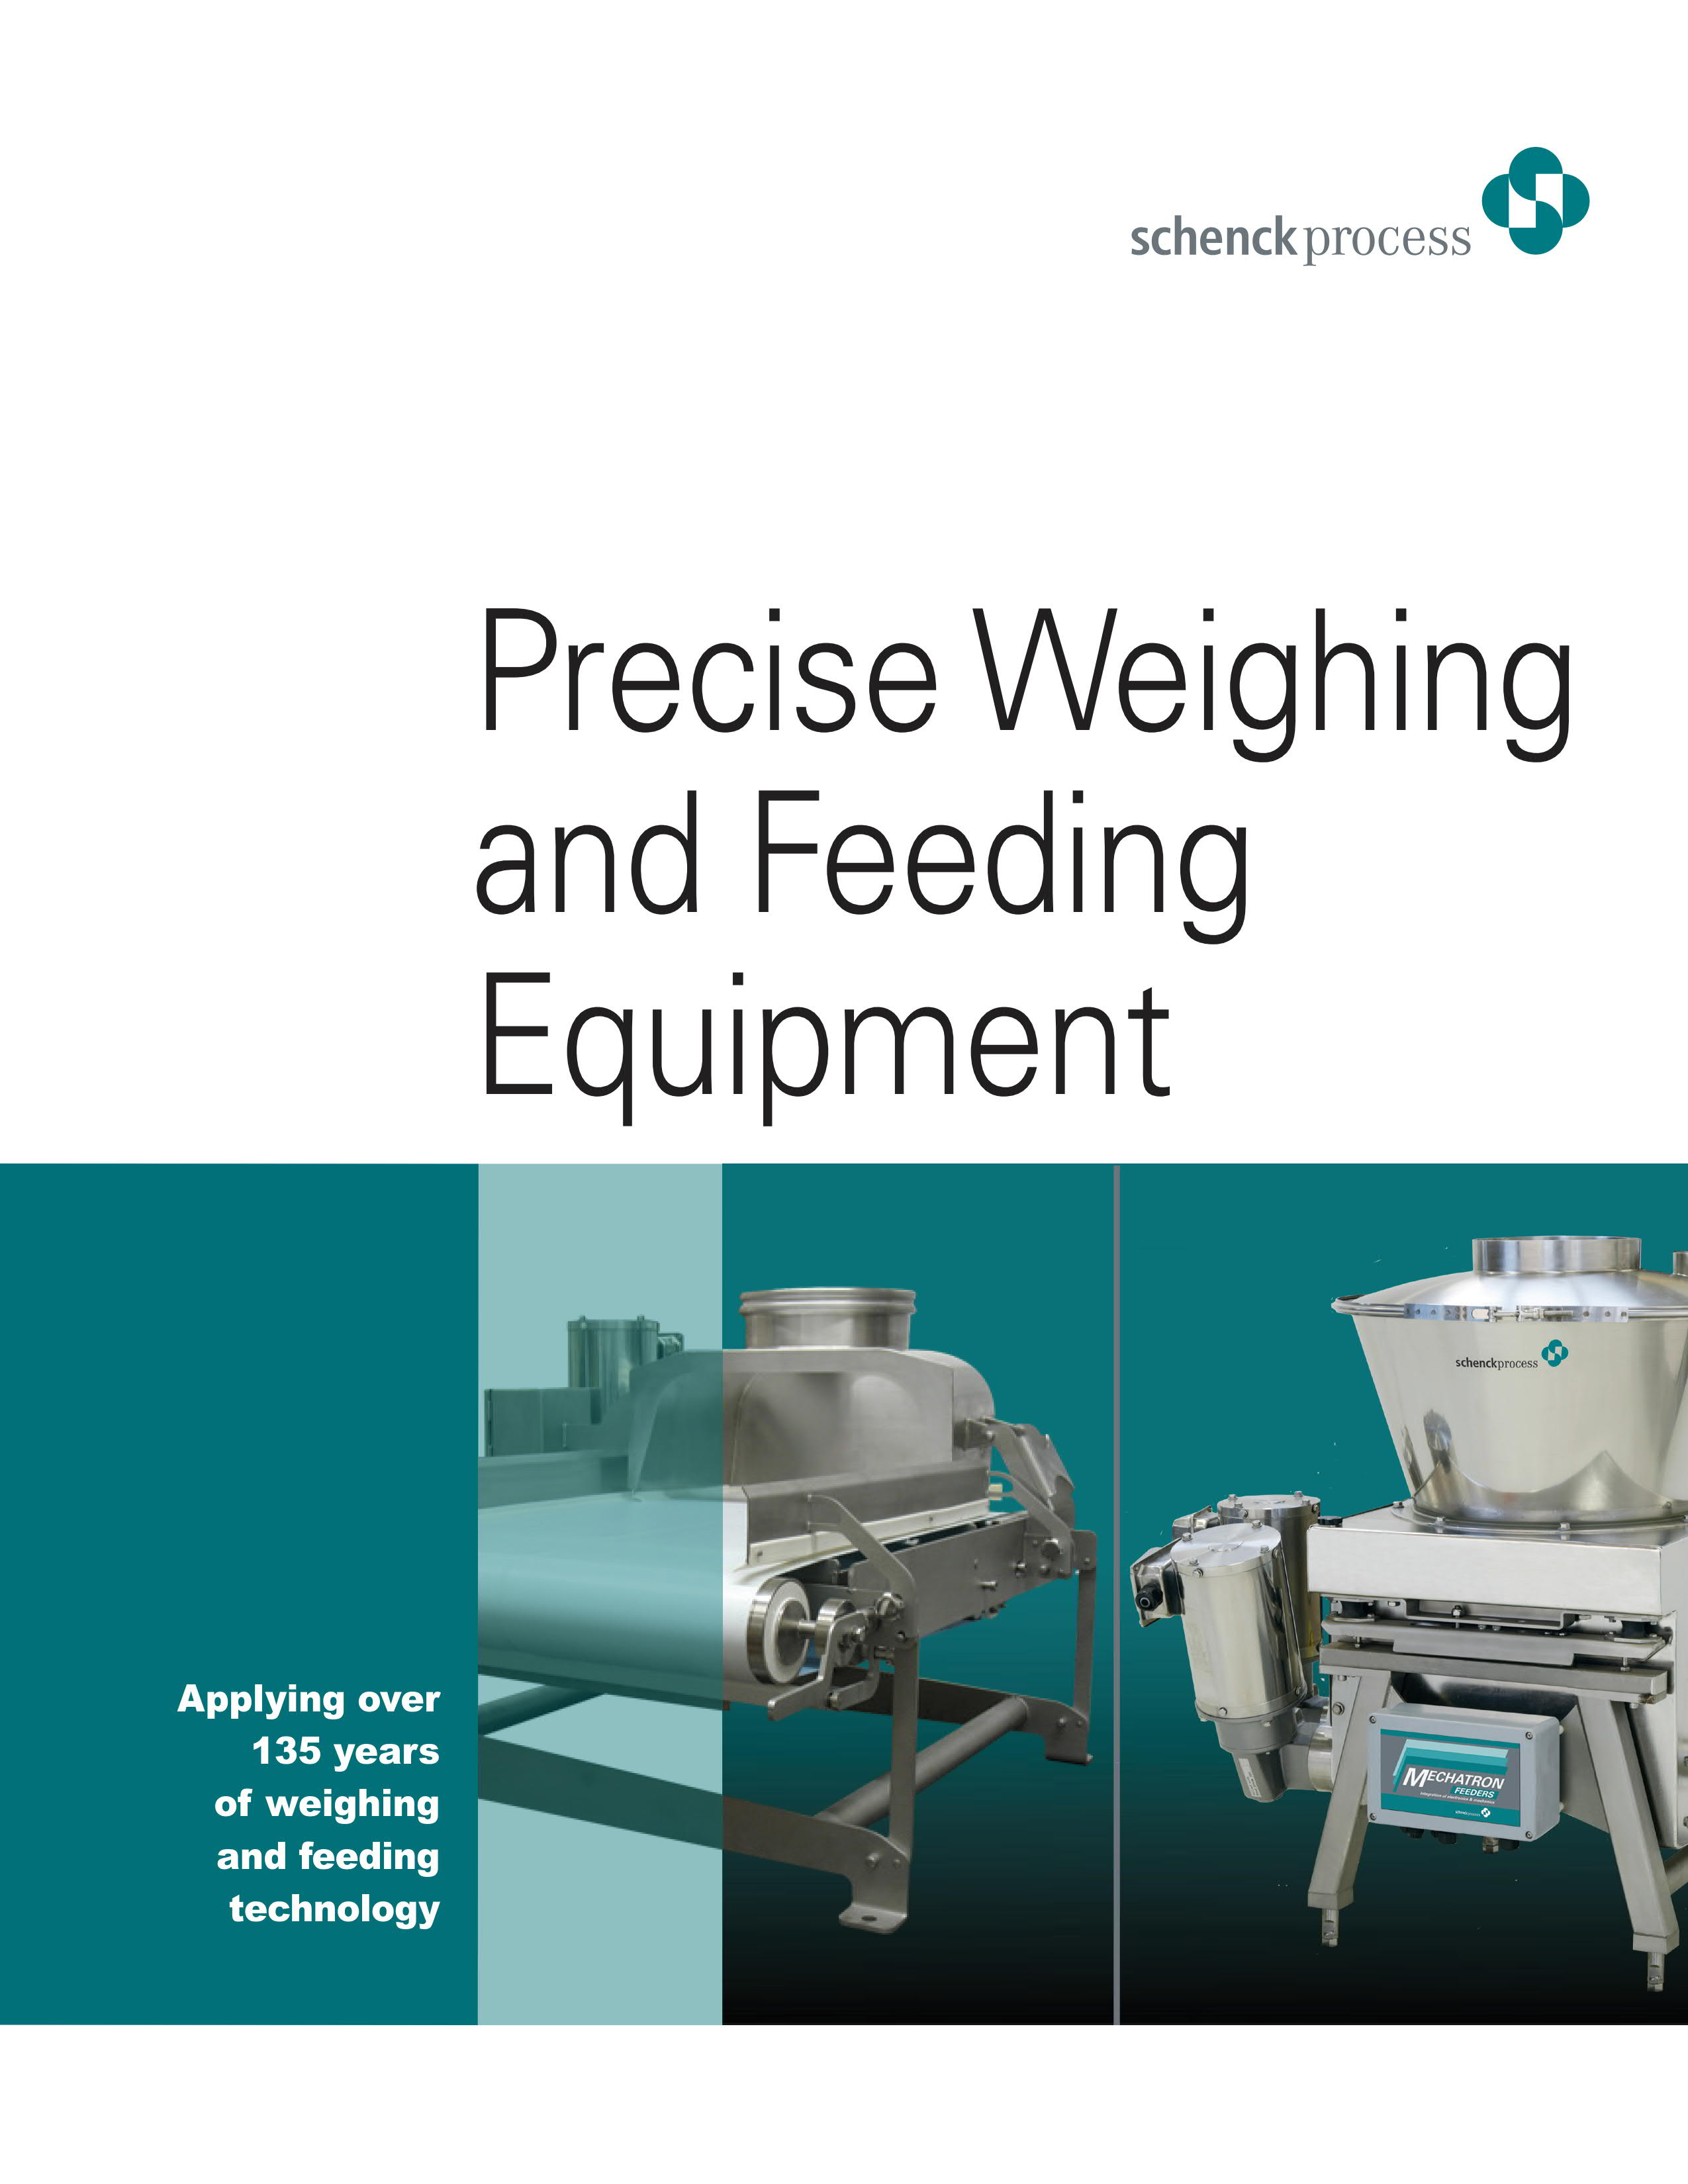 Precise Weighing and Feeding Equipment